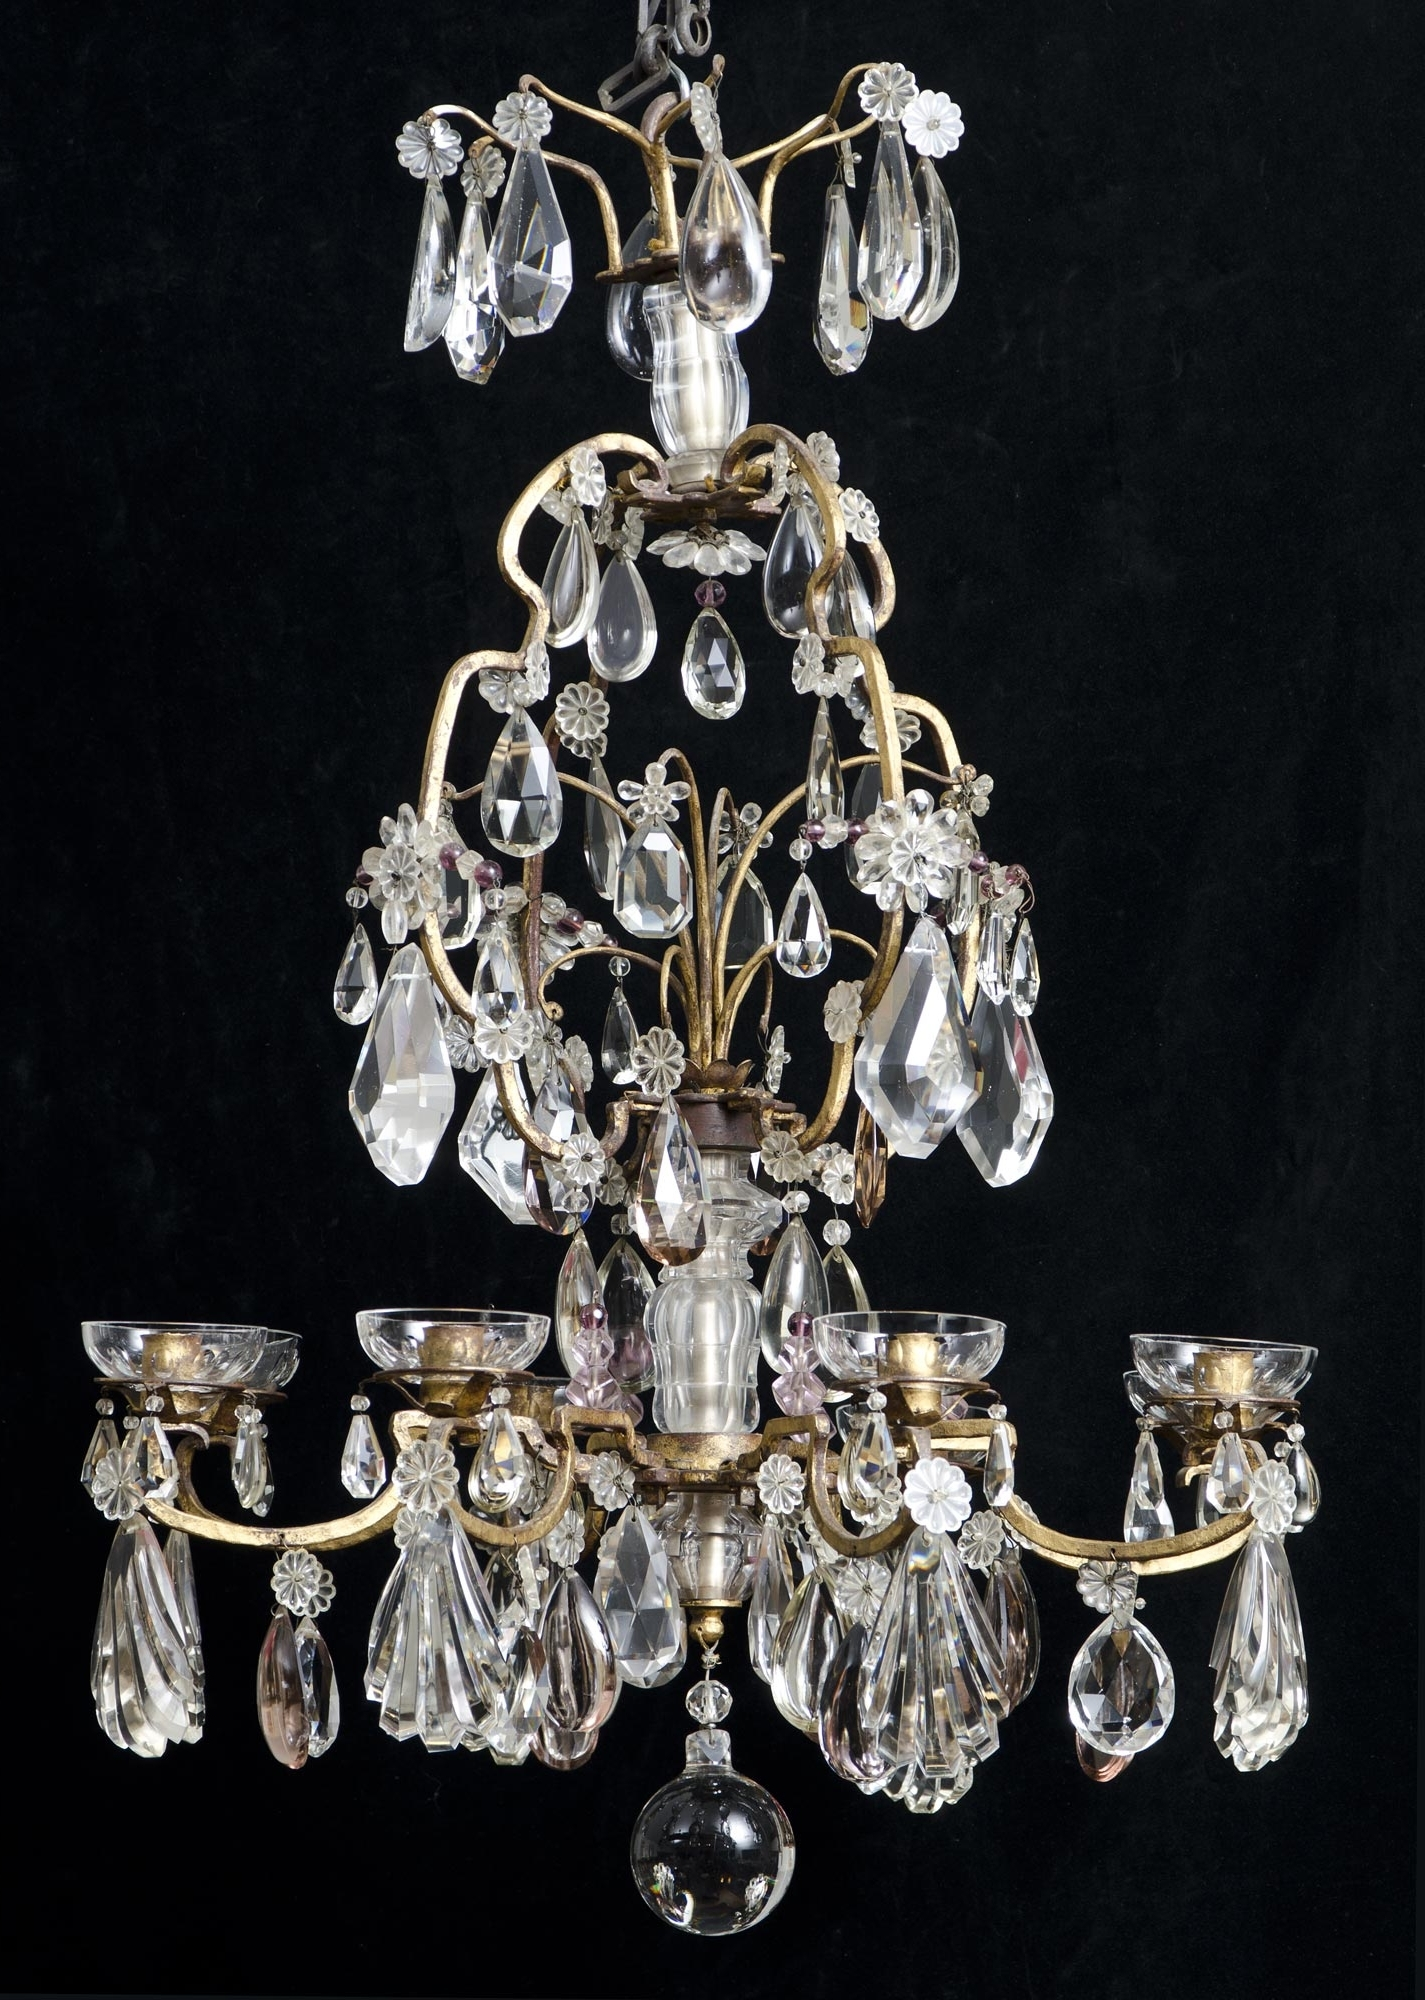 French Crystal Chandeliers With Regard To Most Current Eight Light Antique French Crystal Chandelier (View 11 of 20)